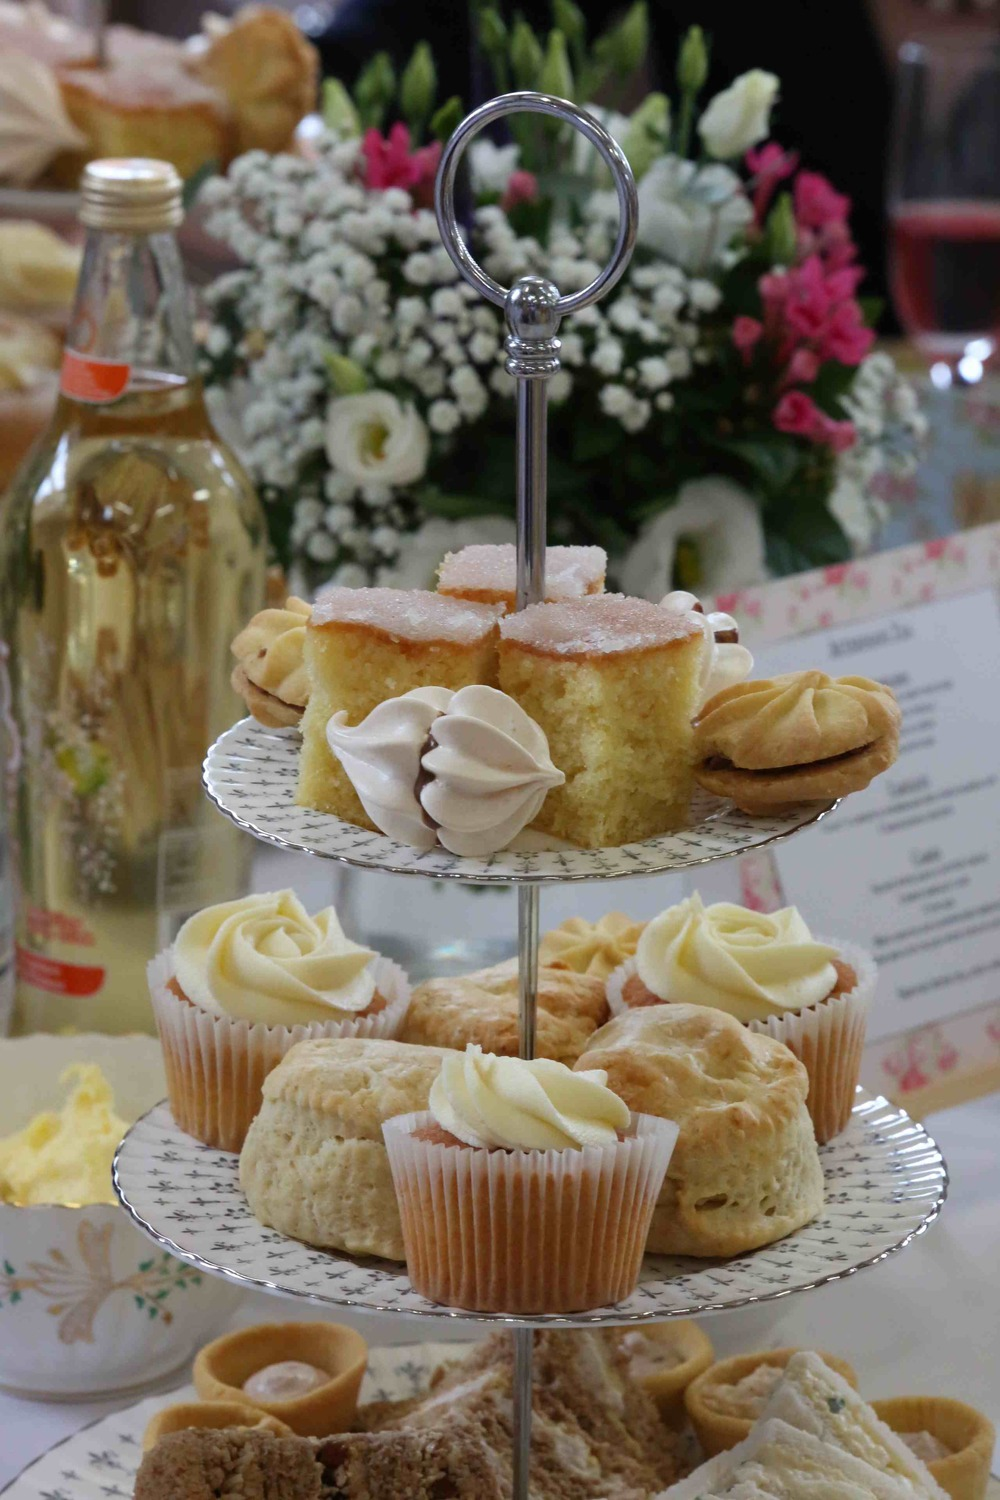 The afternoon tea selection for Sarah & Bens wedding